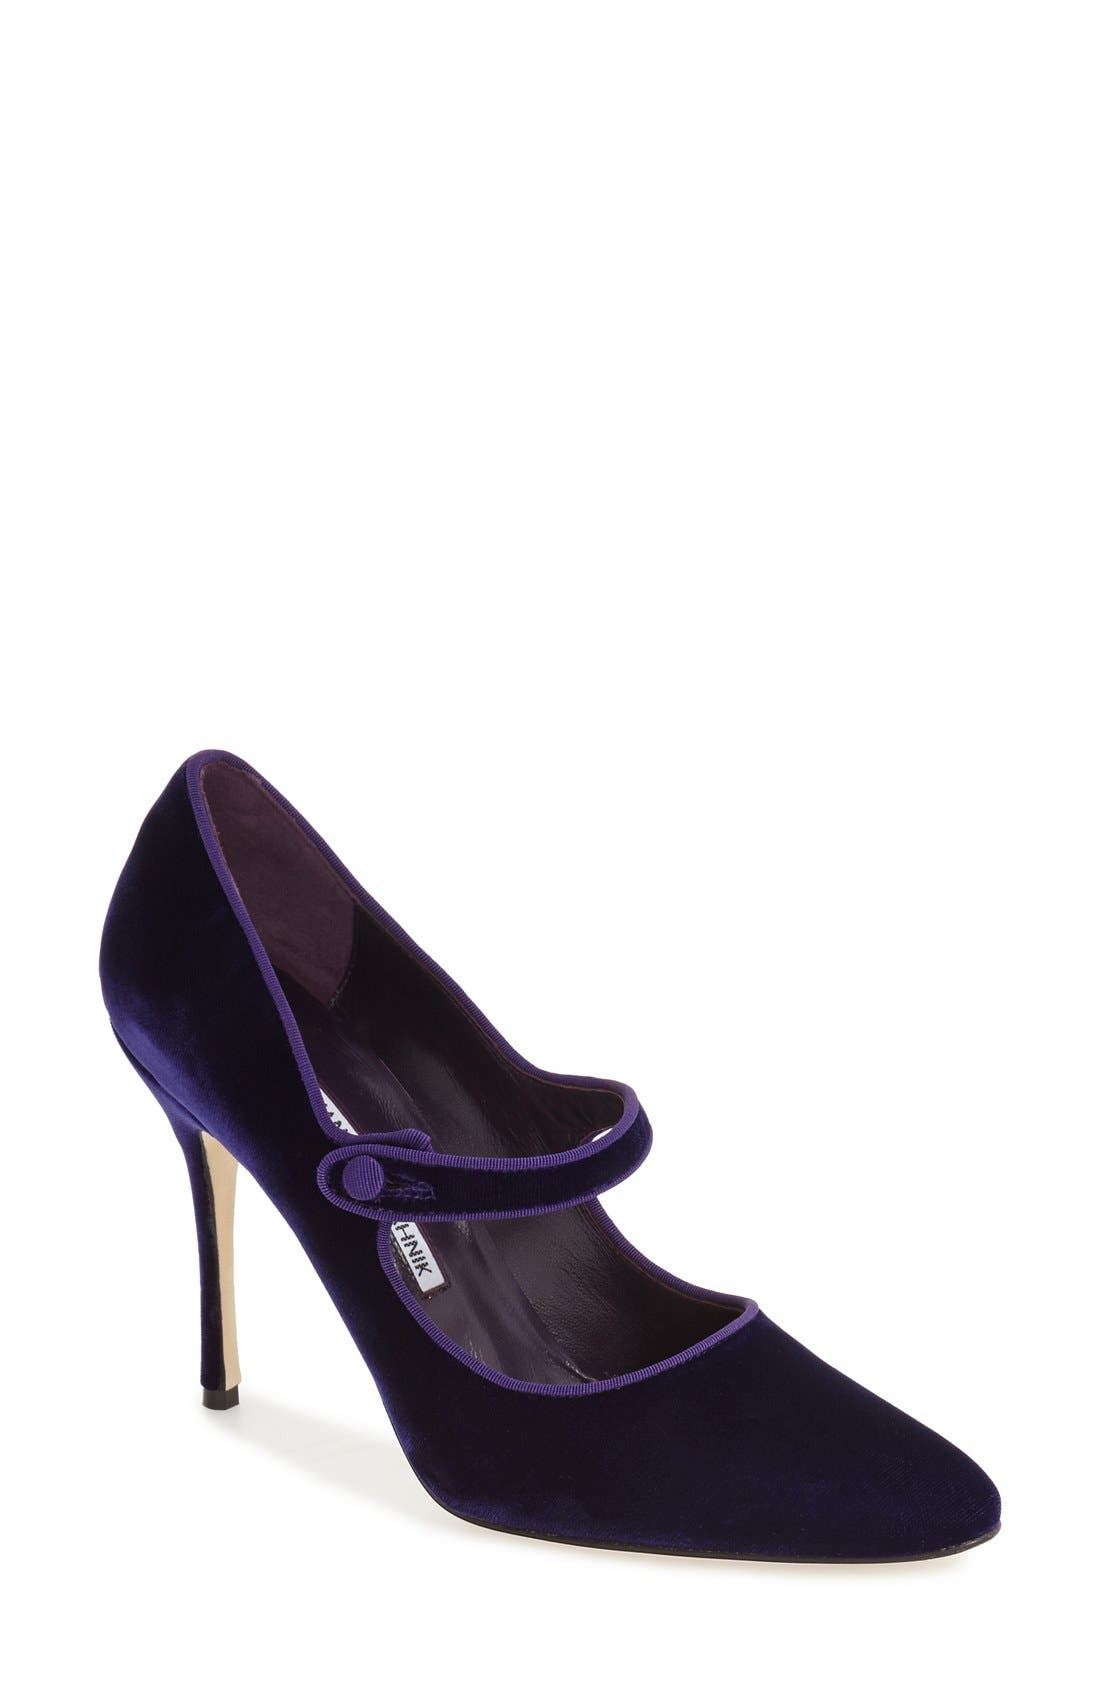 Main Image - Manolo Blahnik 'Campy' Velvet Pump (Women) (Nordstrom Exclusive Color)